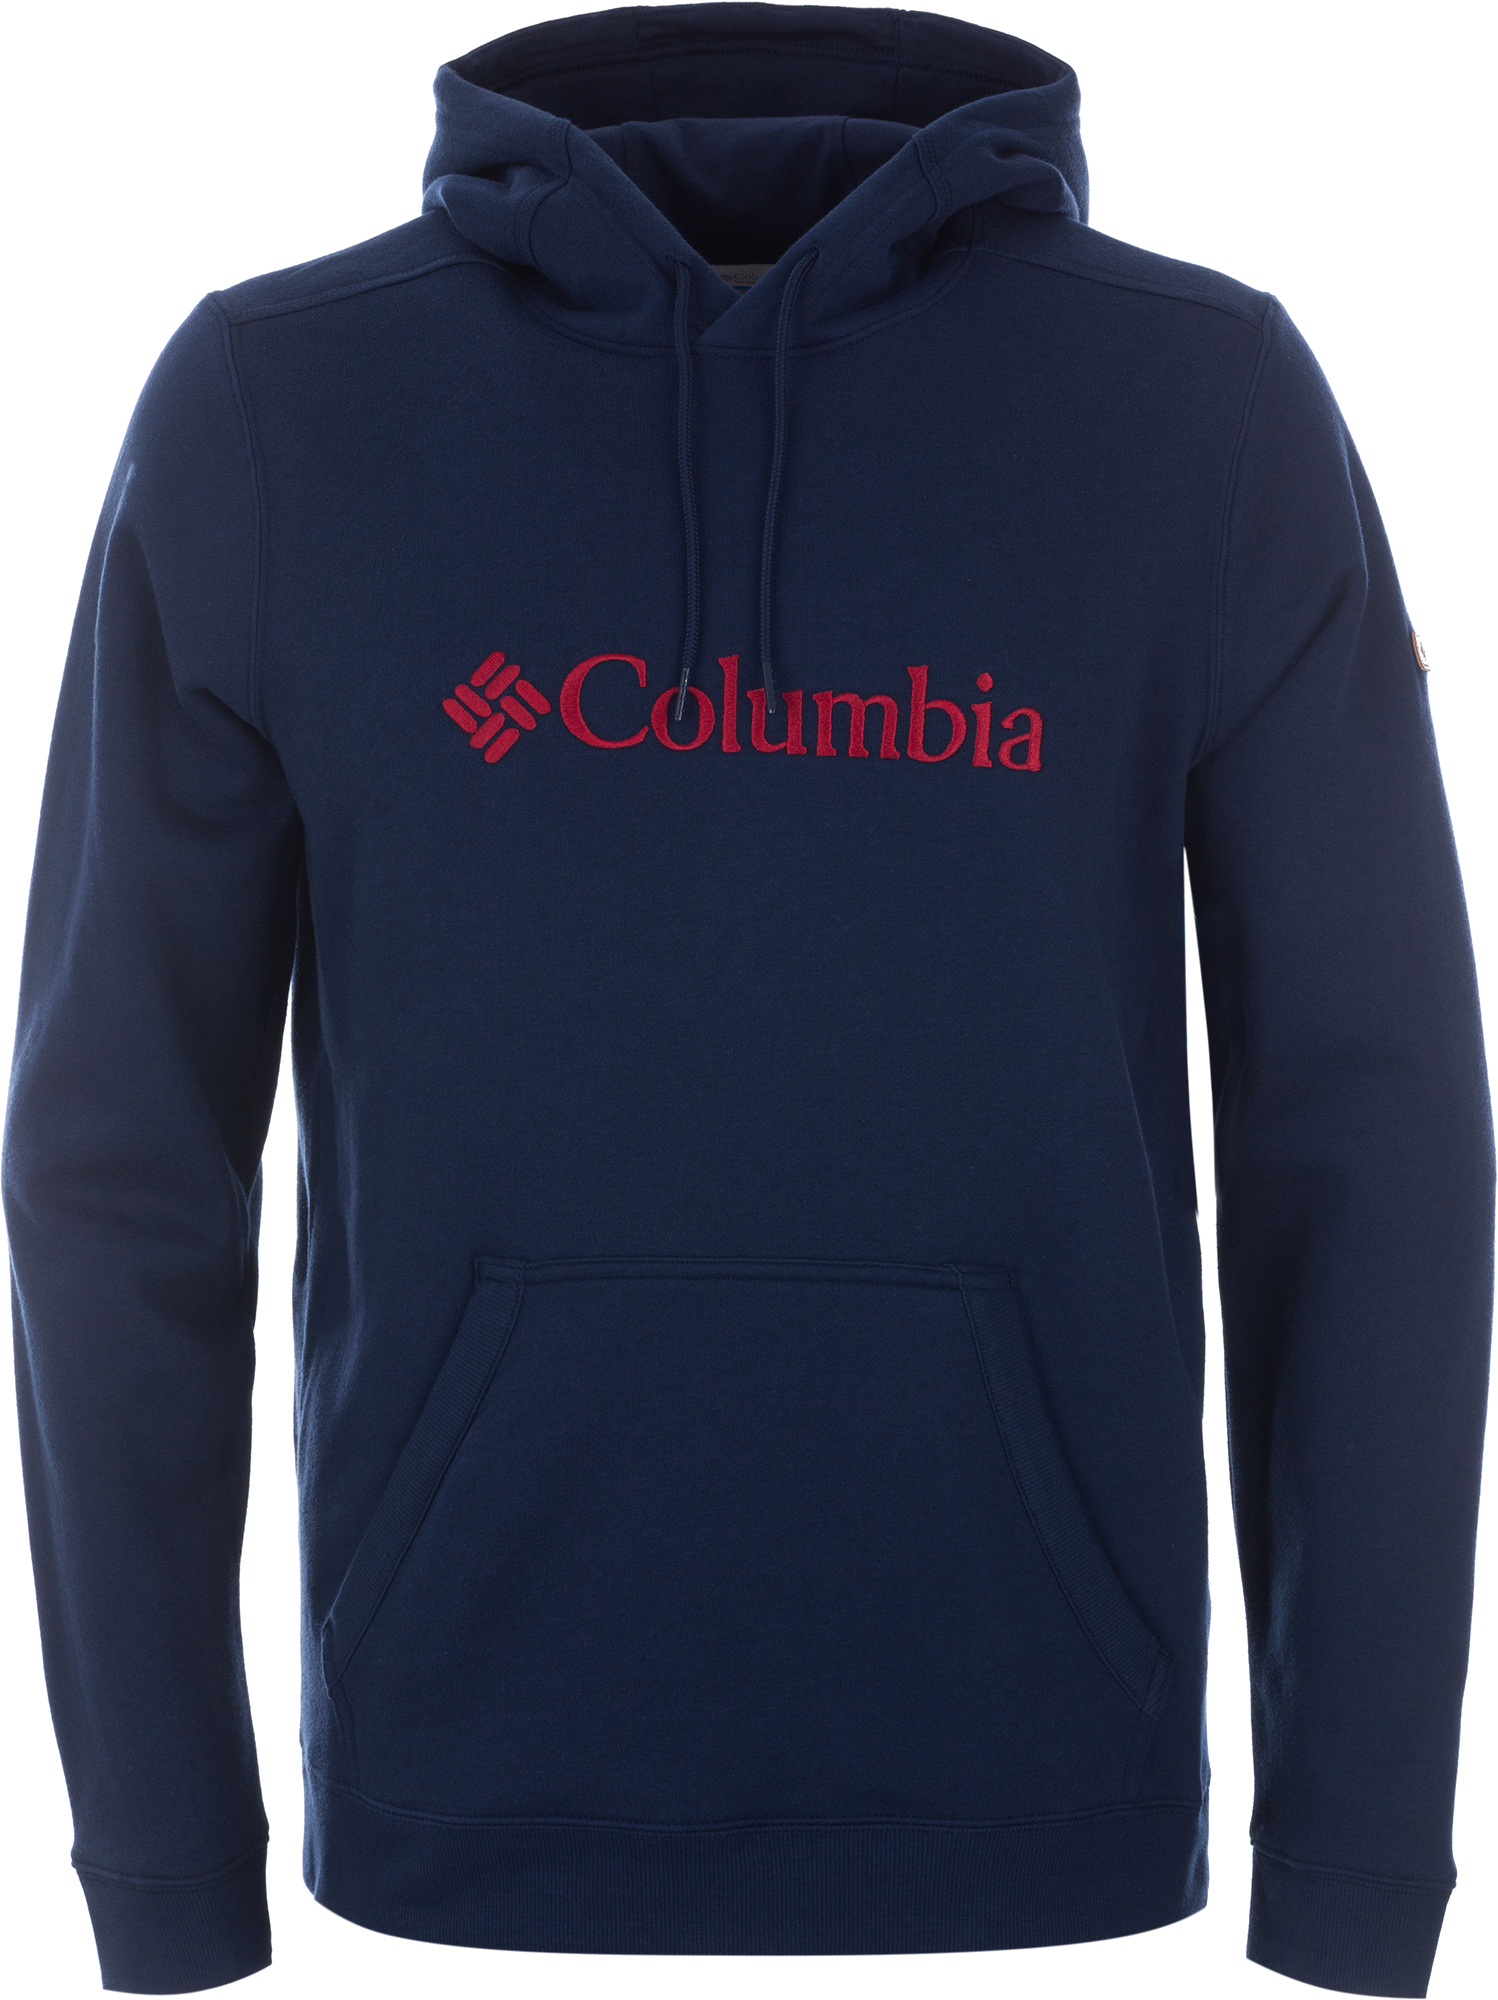 Columbia Джемпер мужской Columbia Basic Logo II